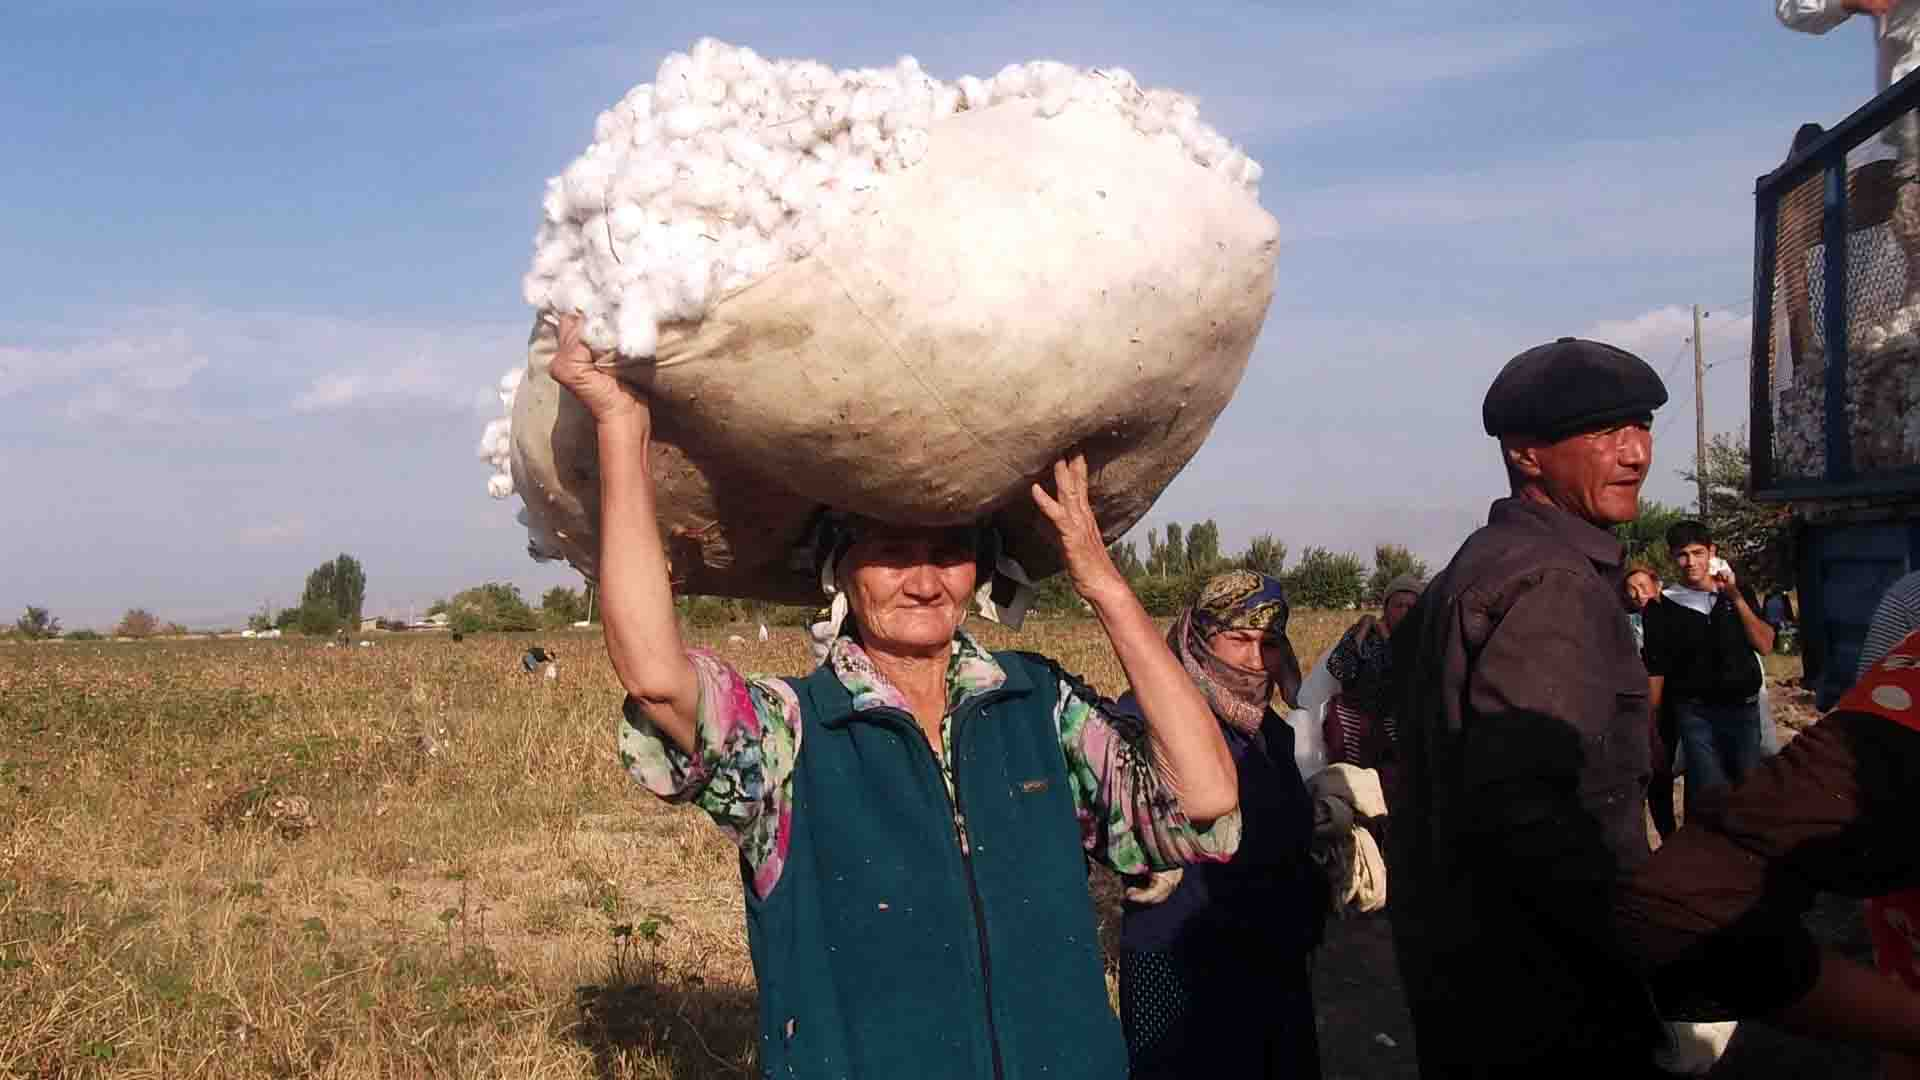 Uzbekistan, cotton harvest, forced labor, child labor, human rights, Solidarity Center